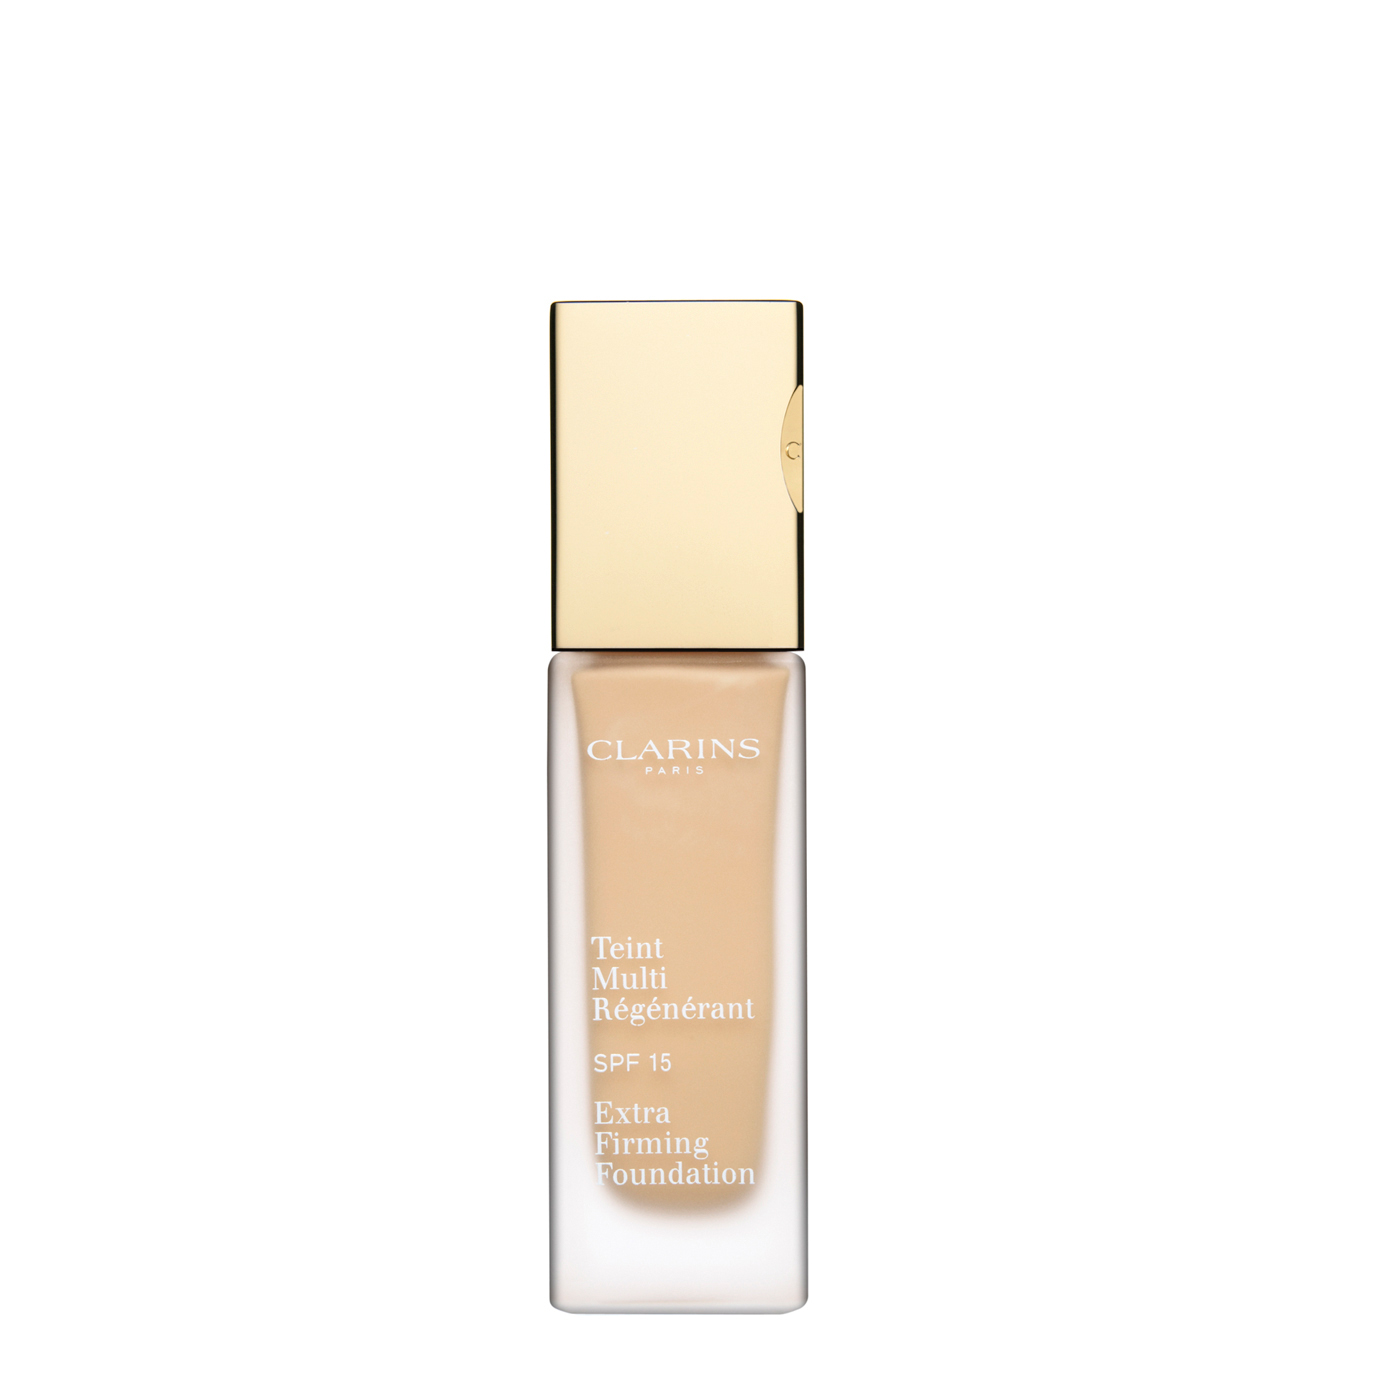 SPF15 Extra Firming Foundation